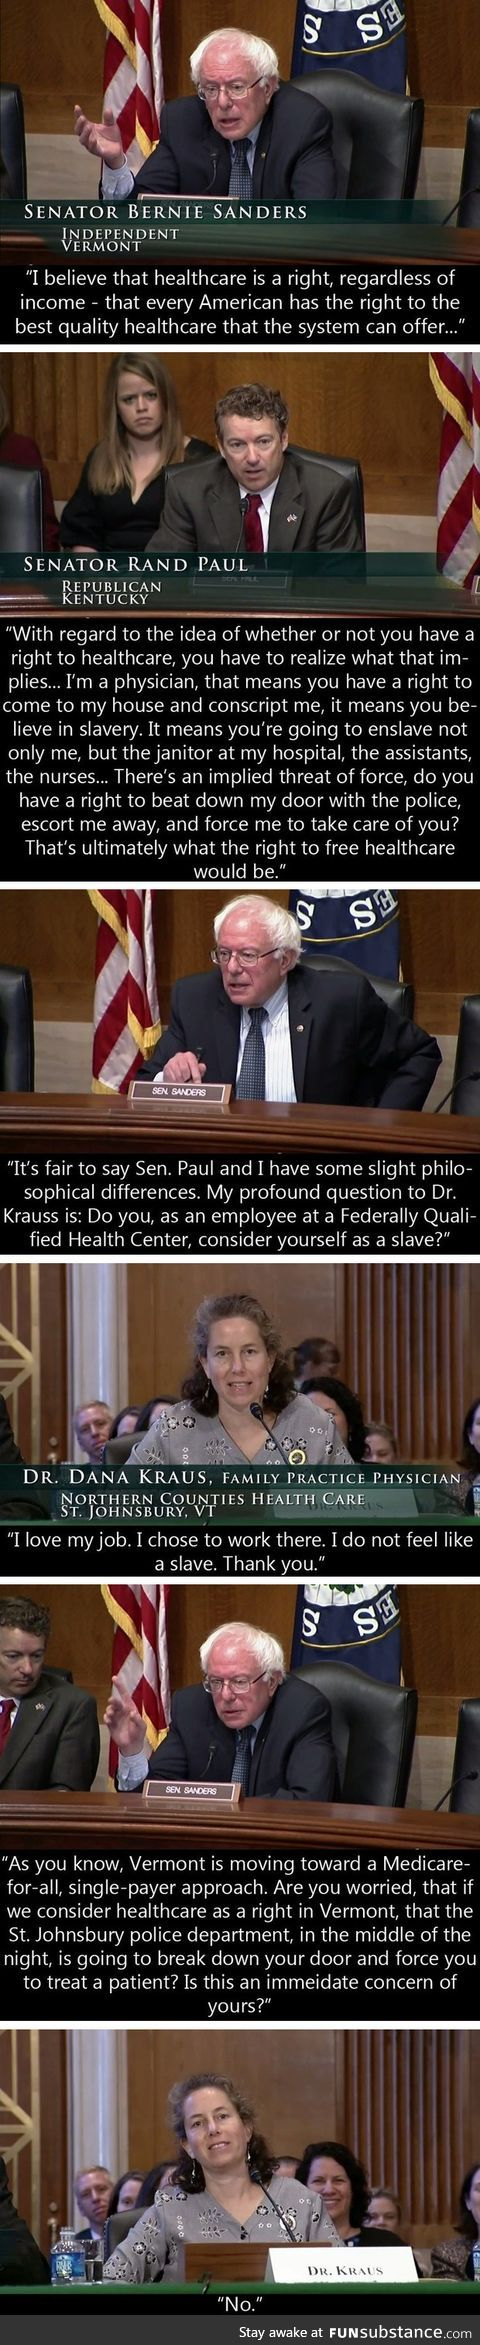 How the remarkable Mr Sanders keeps a straight face when dealing with idiots like Rand Paul only increases my admiration for him :)